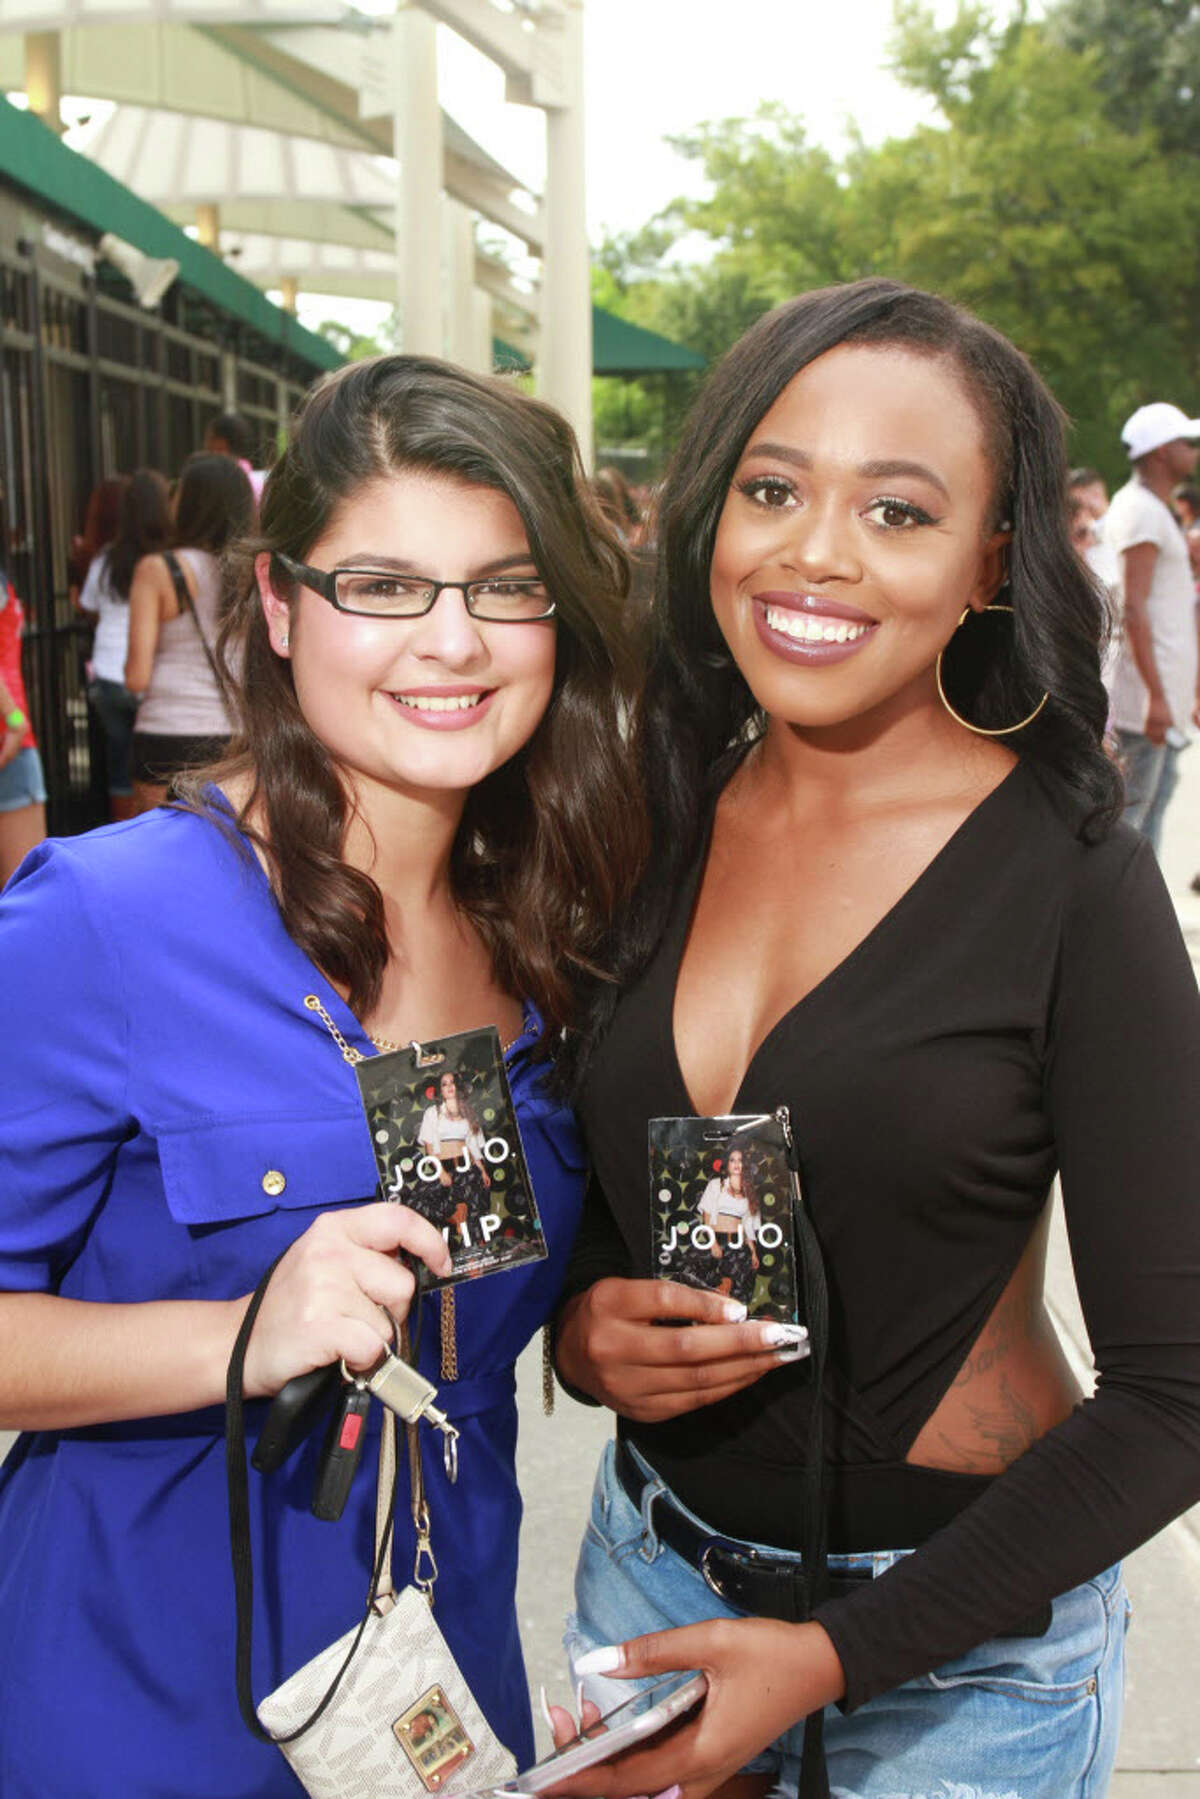 Fans attending the Fifth Harmony concert at the Cynthia Woods Mitchell Pavilion in the Woodlands. (For the Chronicle/Gary Fountain, September 5, 2016)